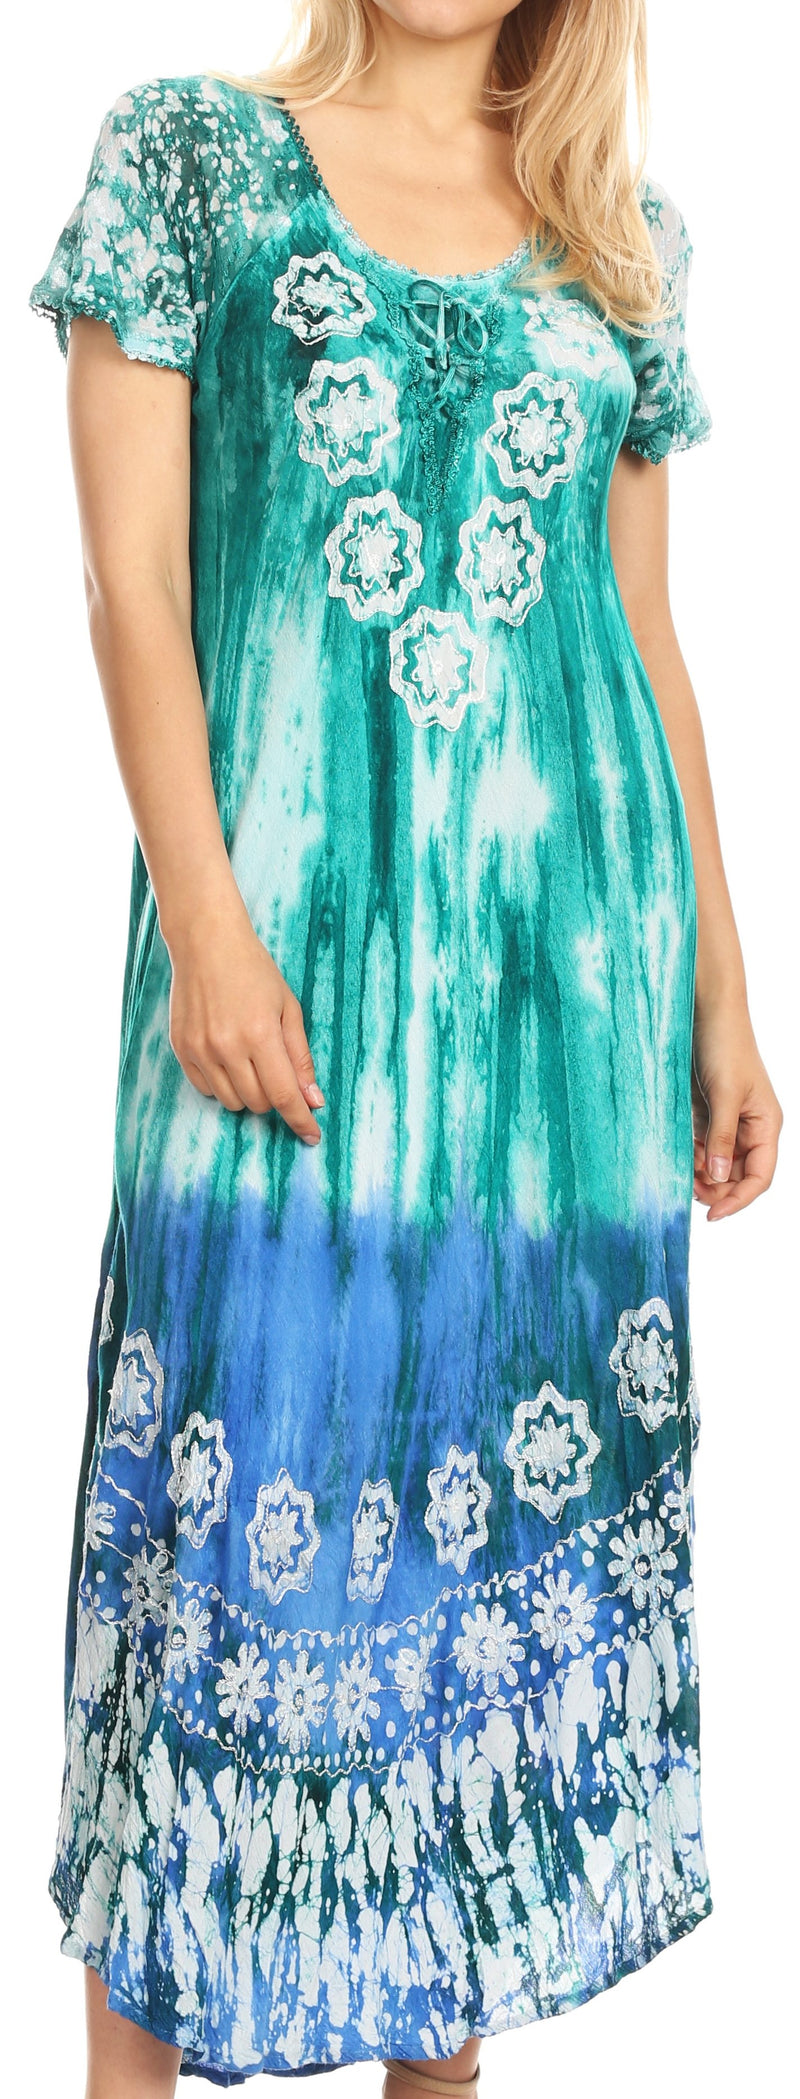 group-Teal (Sakkas Sofia Women's Flowy Summer Maxi Beach Dress Tie-dye w/Batik & Short Sleeves)